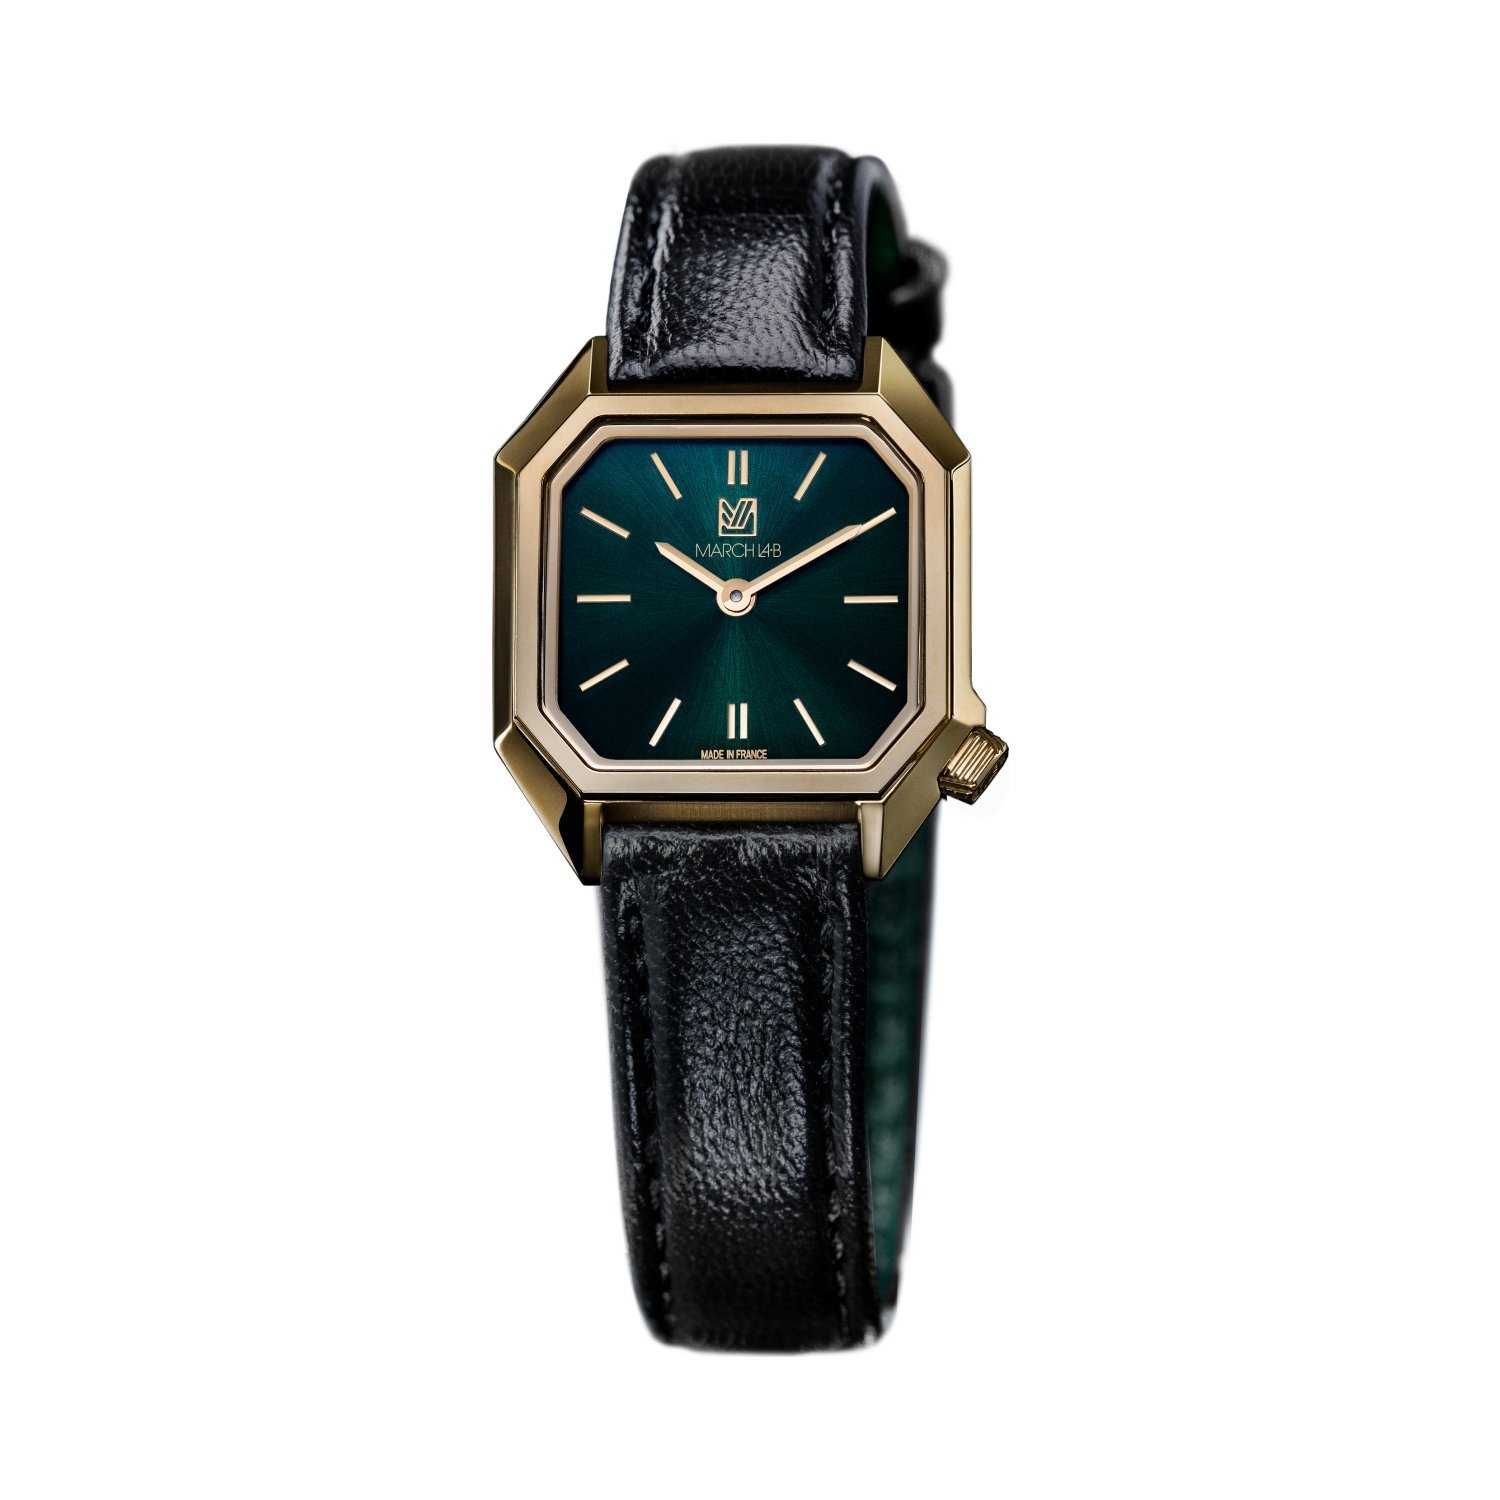 Montre March LA.B Lady Mansart Electric Emerald - Bracelet veau vert et noir vue 1